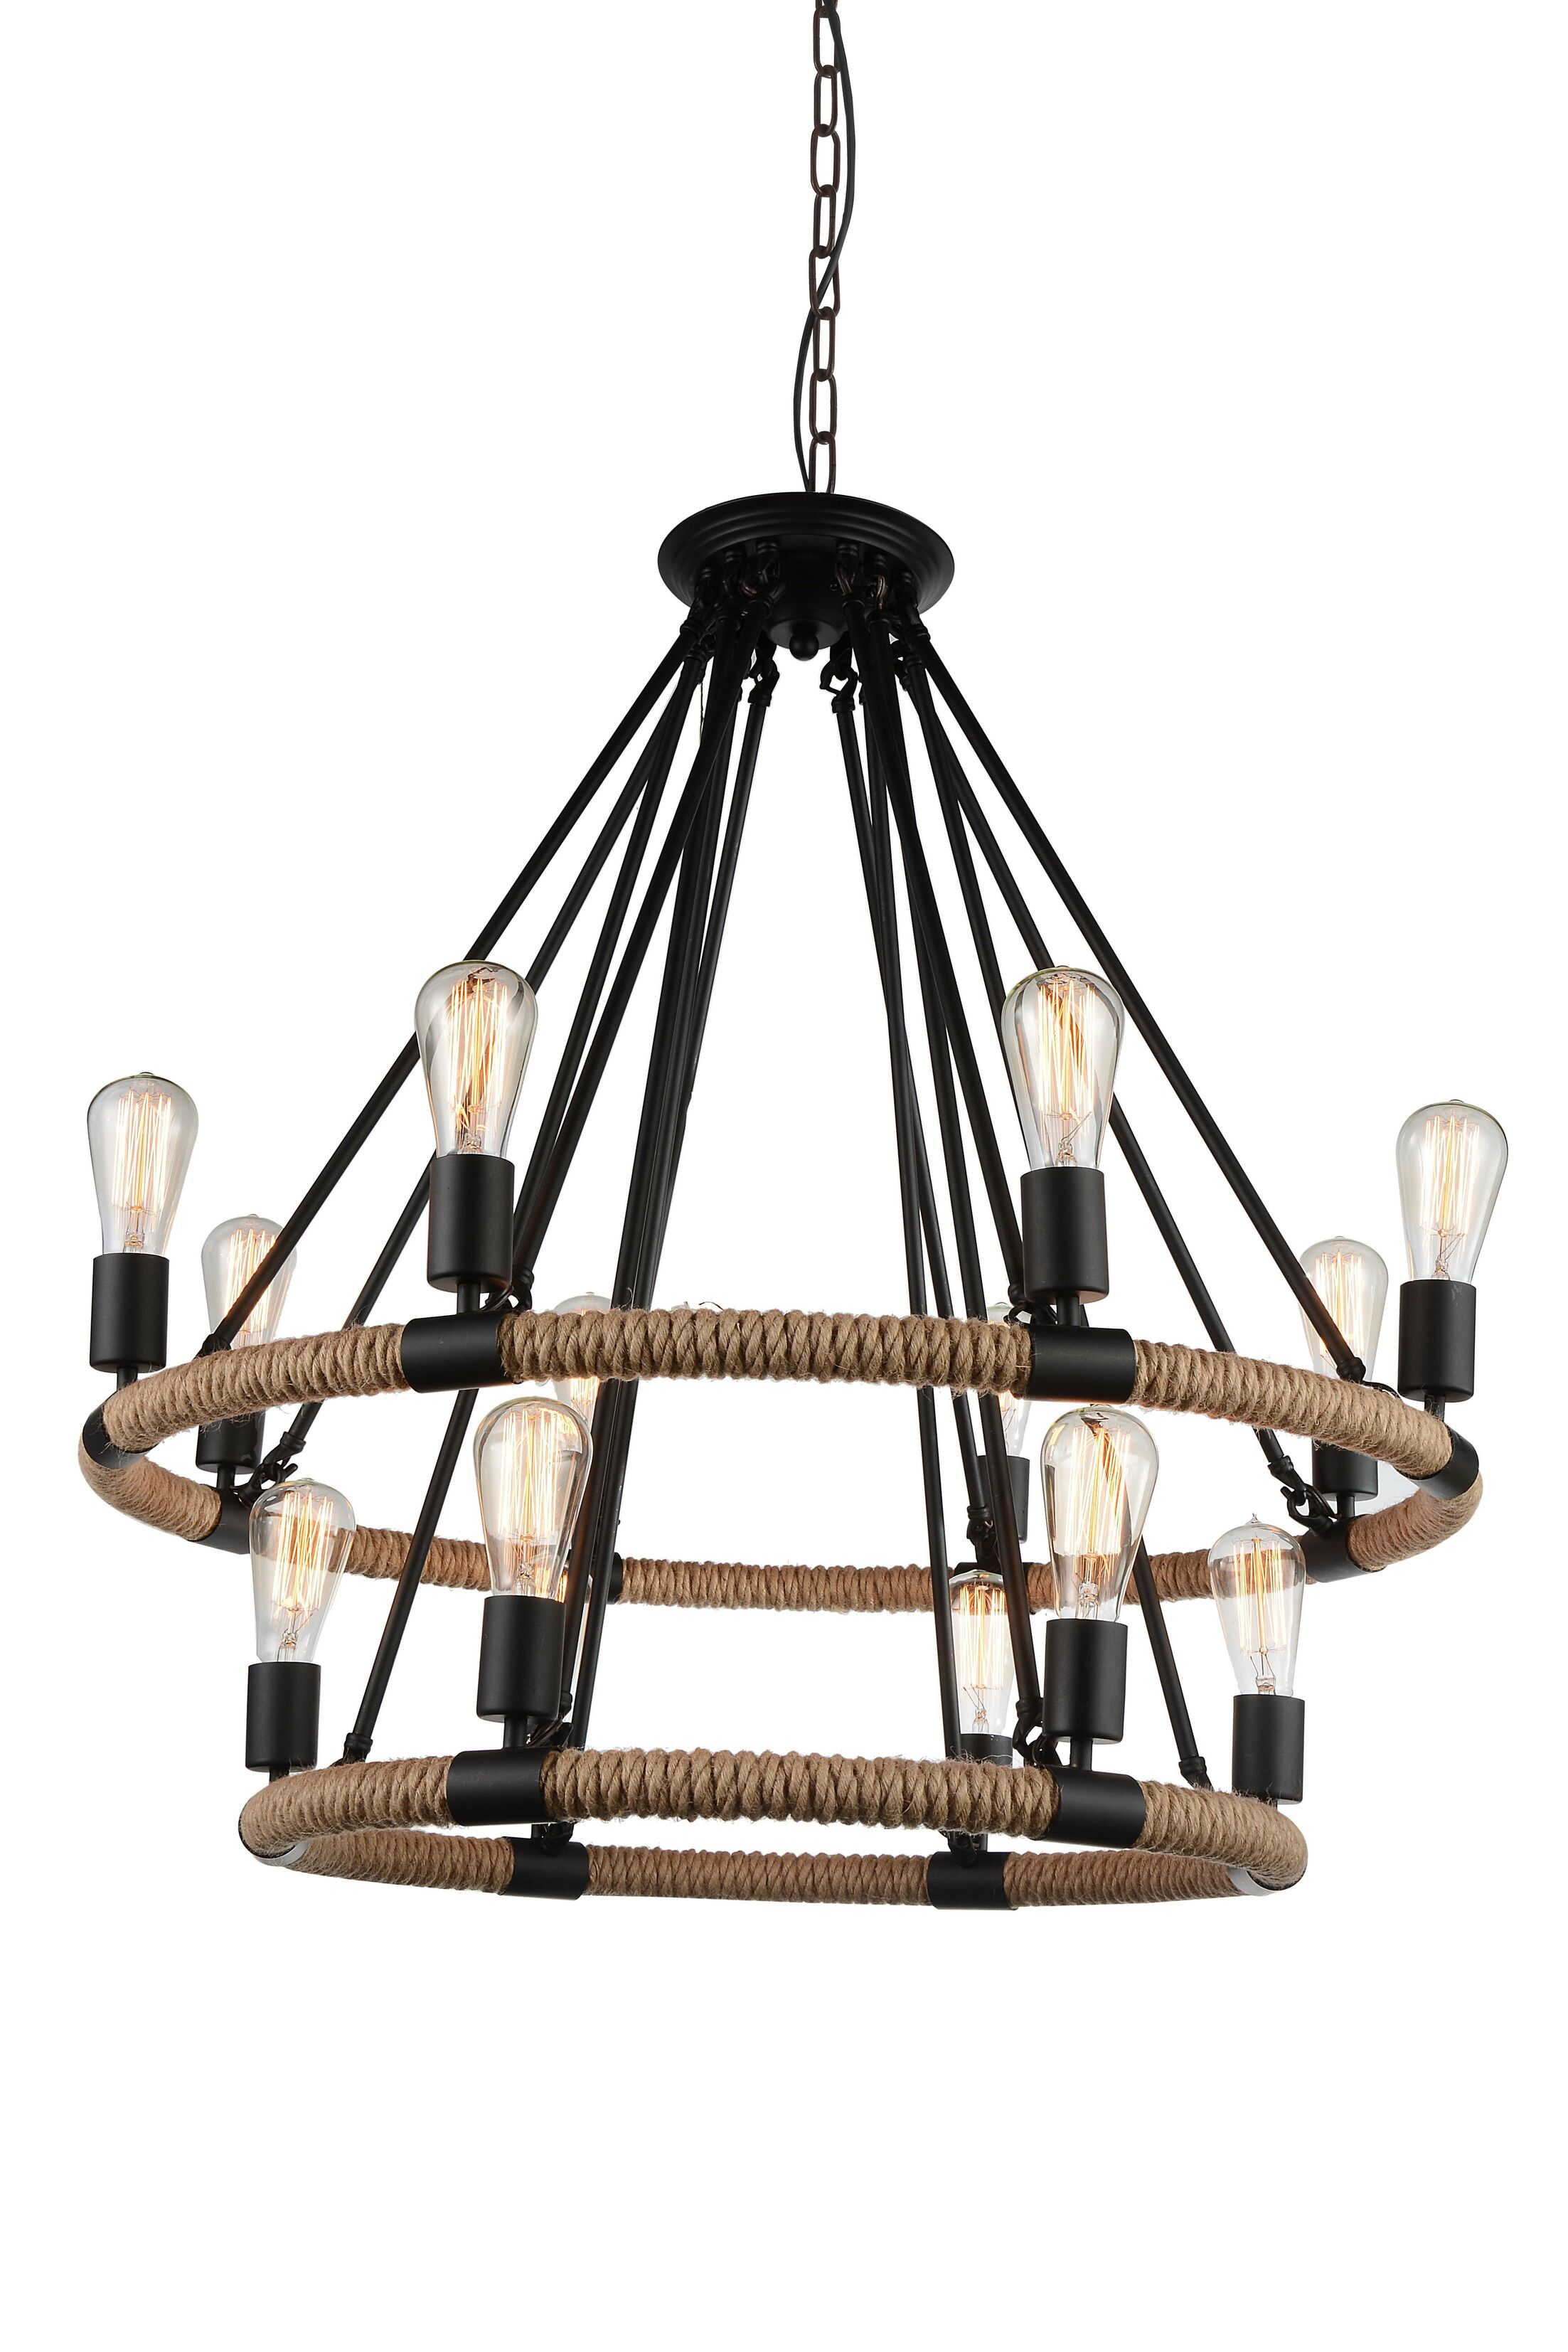 Inyo 14-Light Wagon Wheel Chandelier